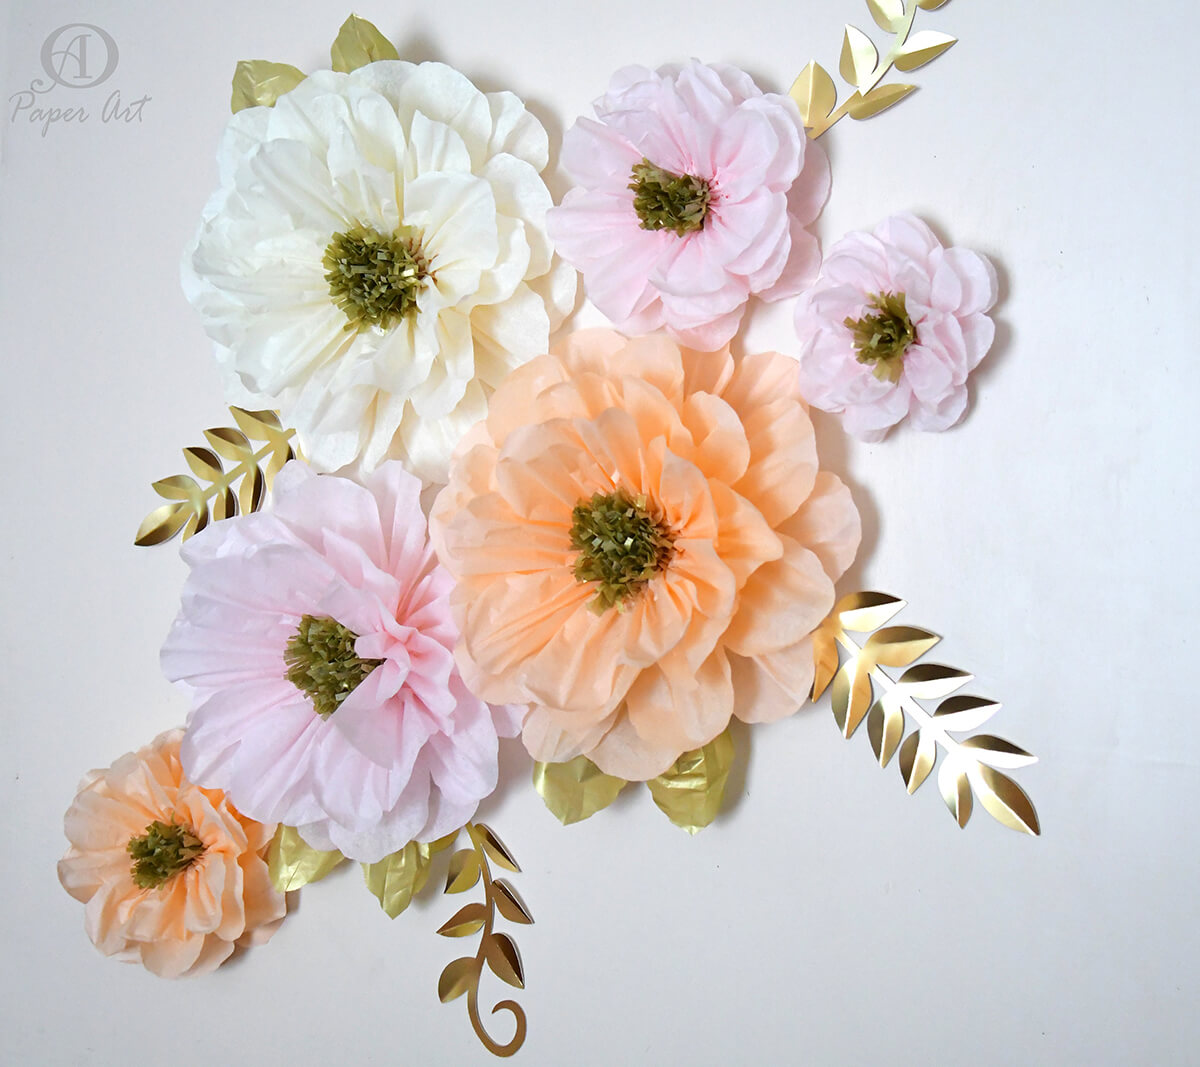 Luscious Tissue Flowers with Gold Foil Leaf